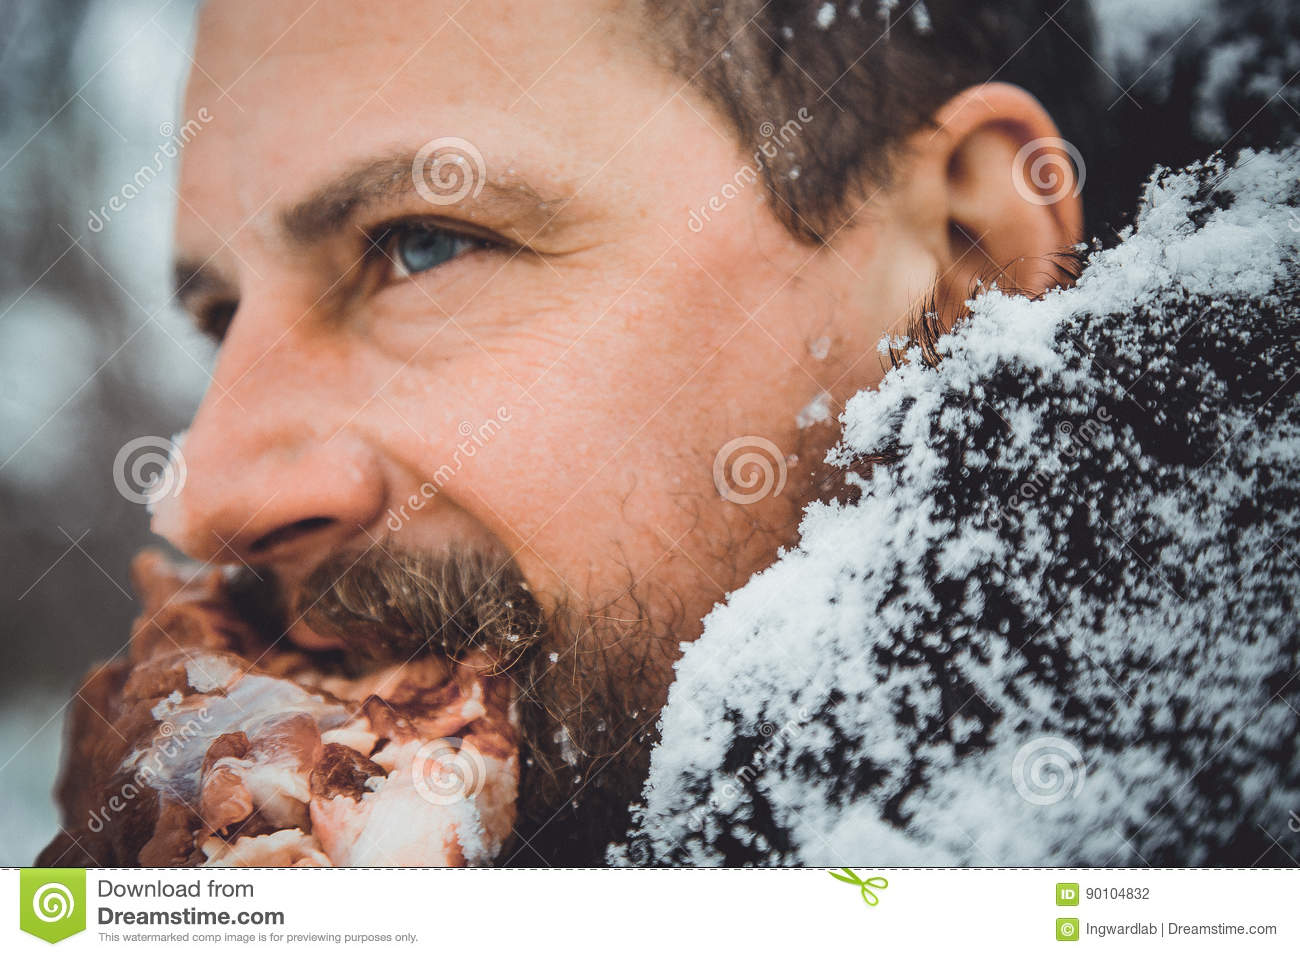 Portrait Of A Man With A Beard Devouring Raw Meat  Hungry Northern